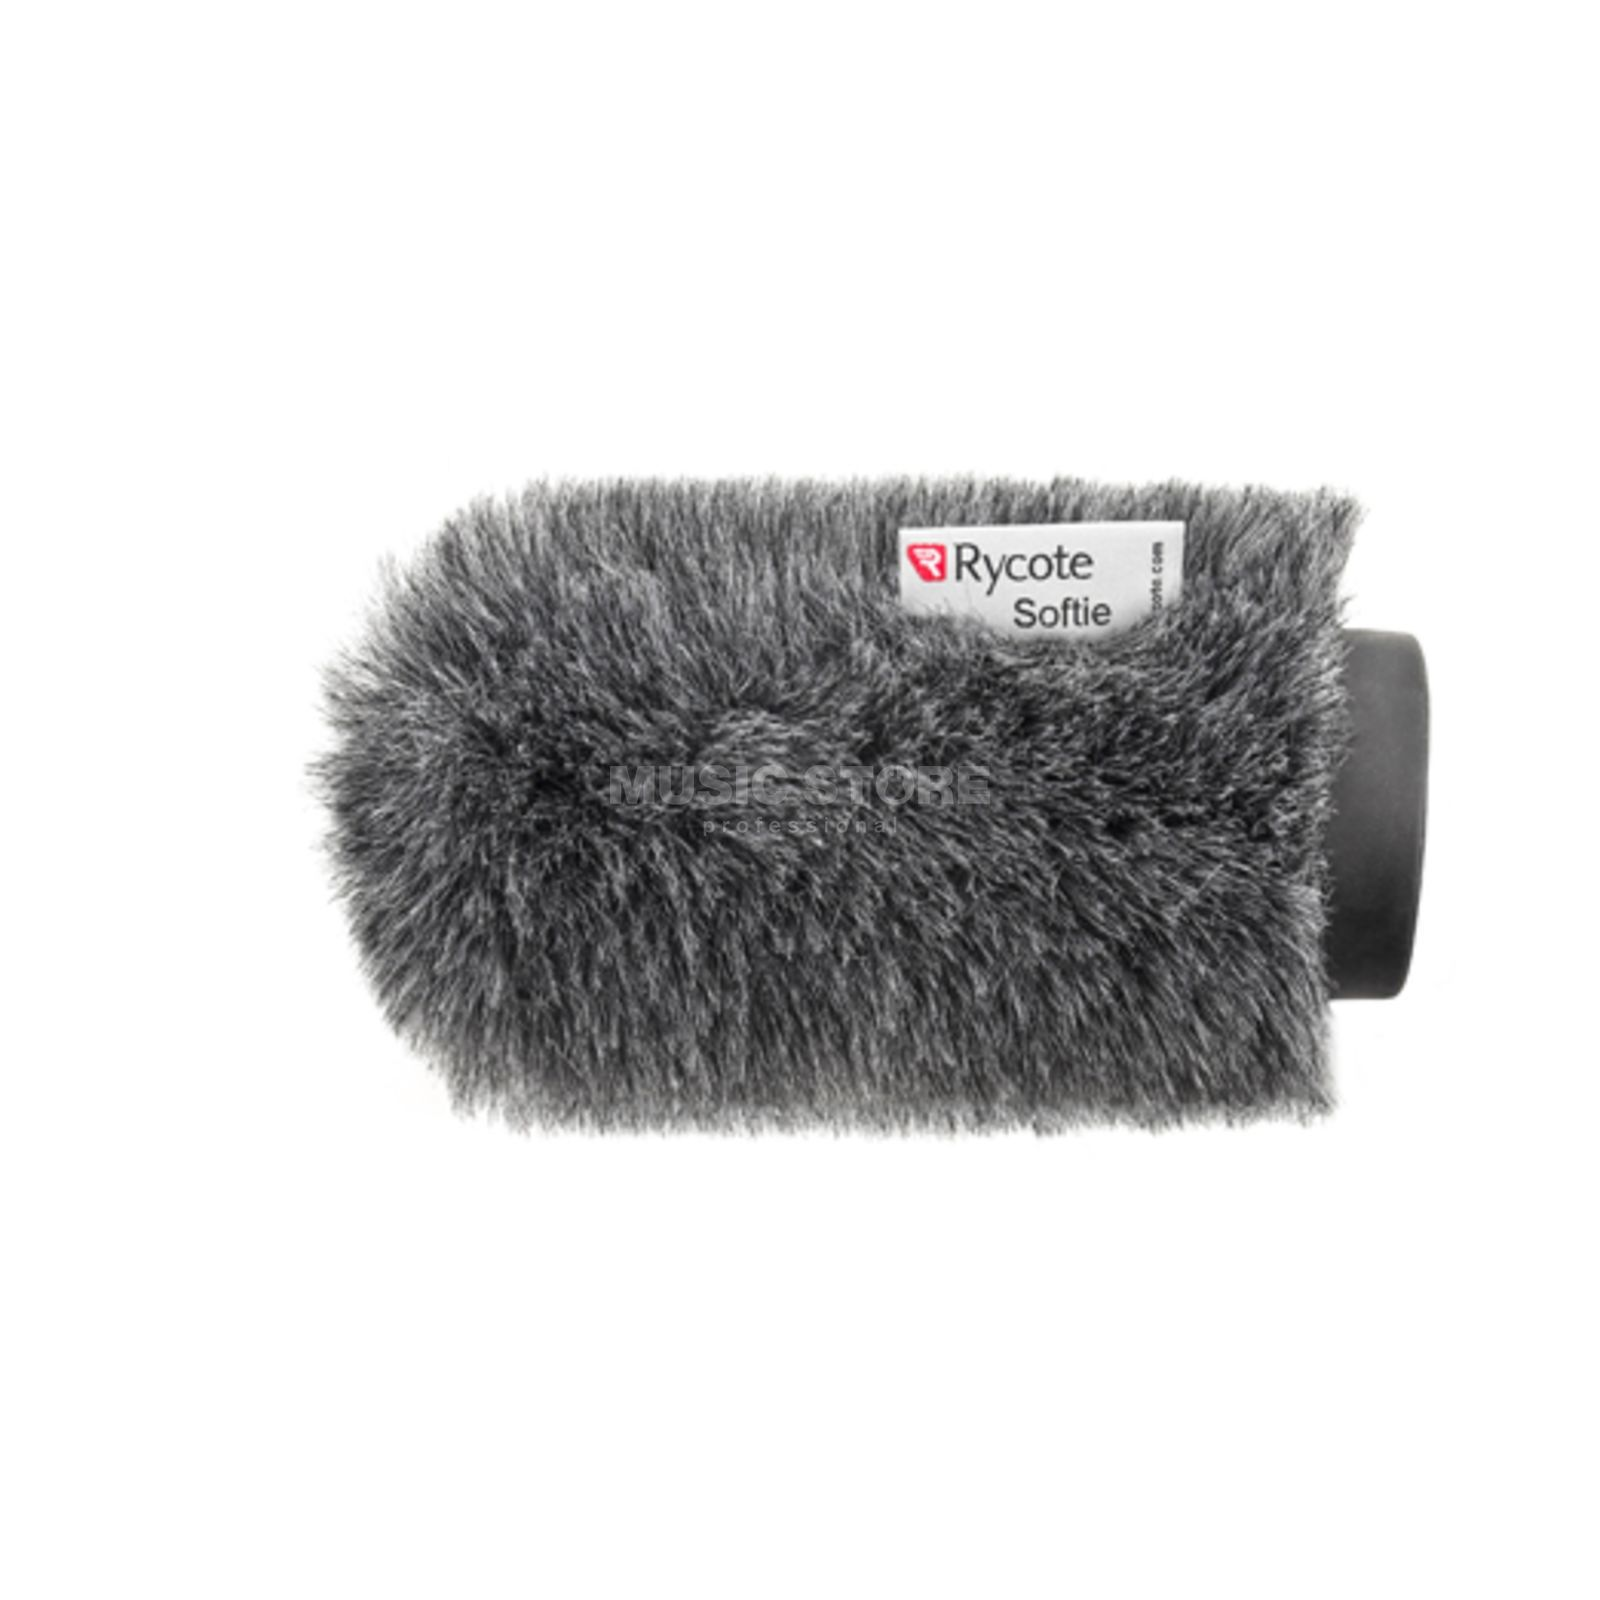 Rycote Classic Softie Windshield 10cm Standard Hole (19-22mm) Produktbillede